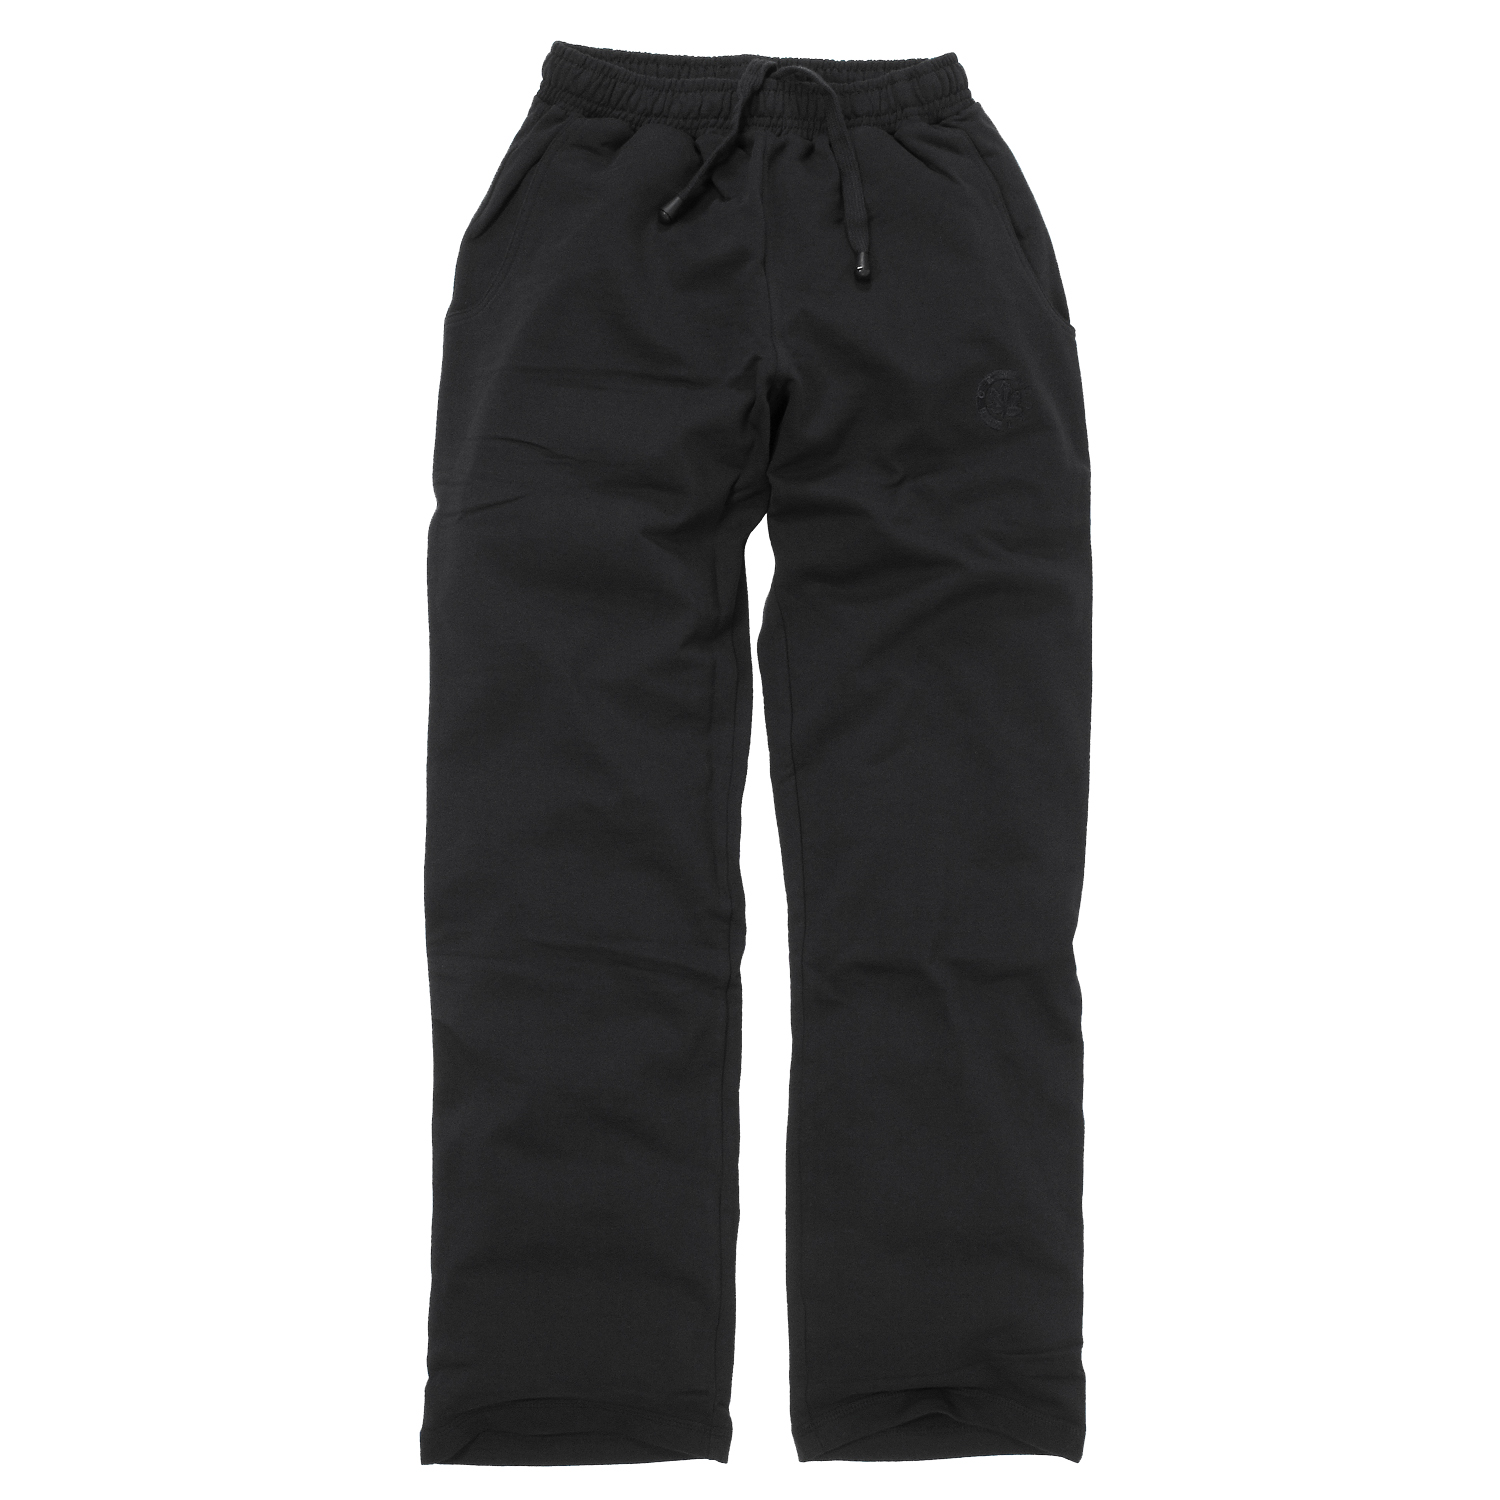 Detail Image to Jogging pants in black by Ahorn Sportswear up to oversize 10XL